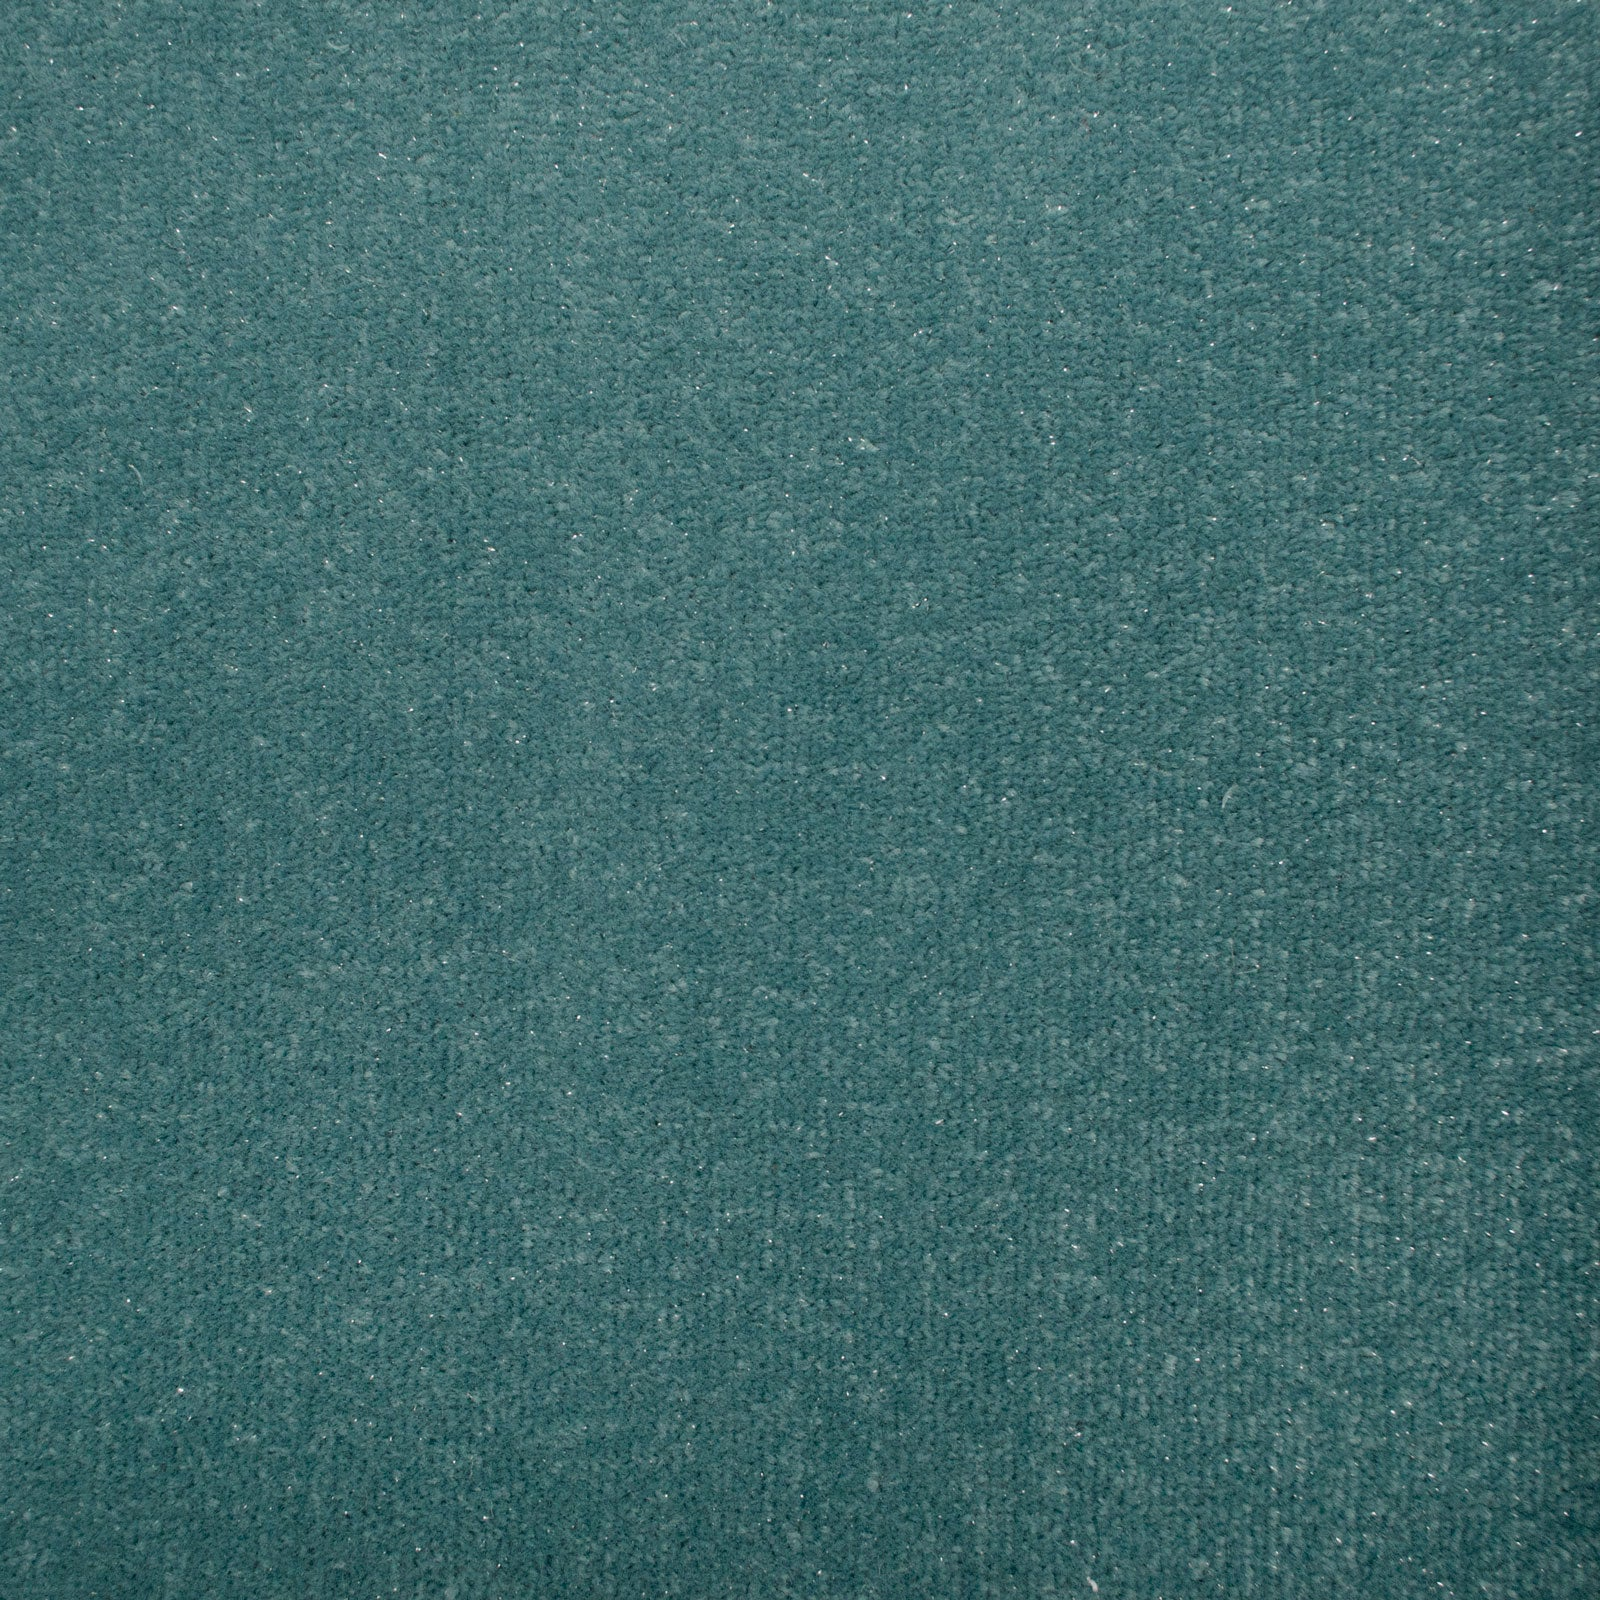 Teal Aqua Glitter Sparkly Twist Carpet - Far